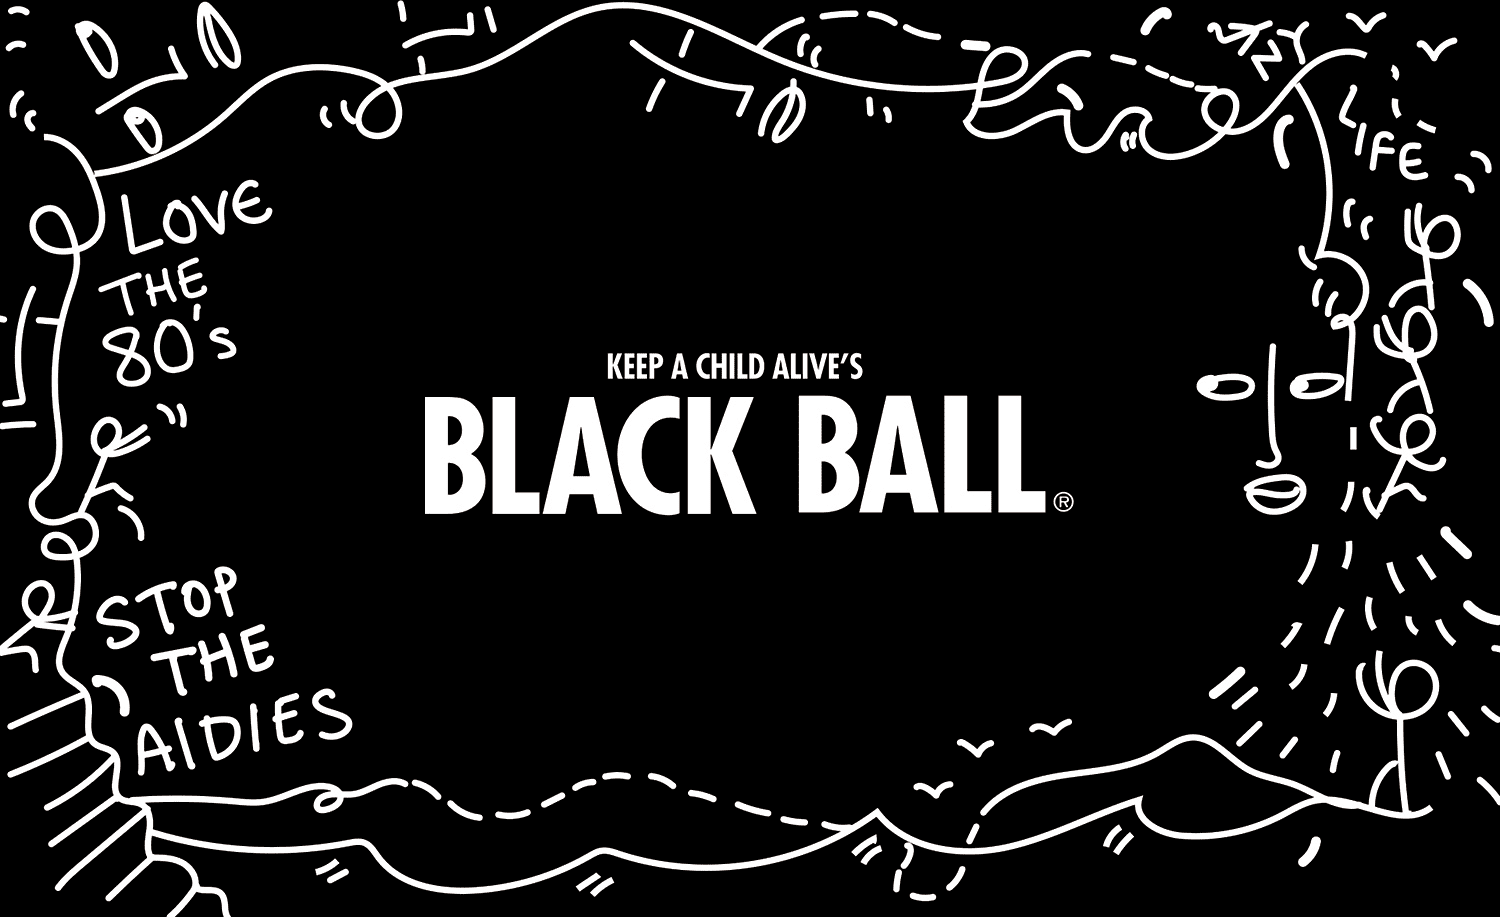 THE BLACK BALL: BRING BACK THE 80'S